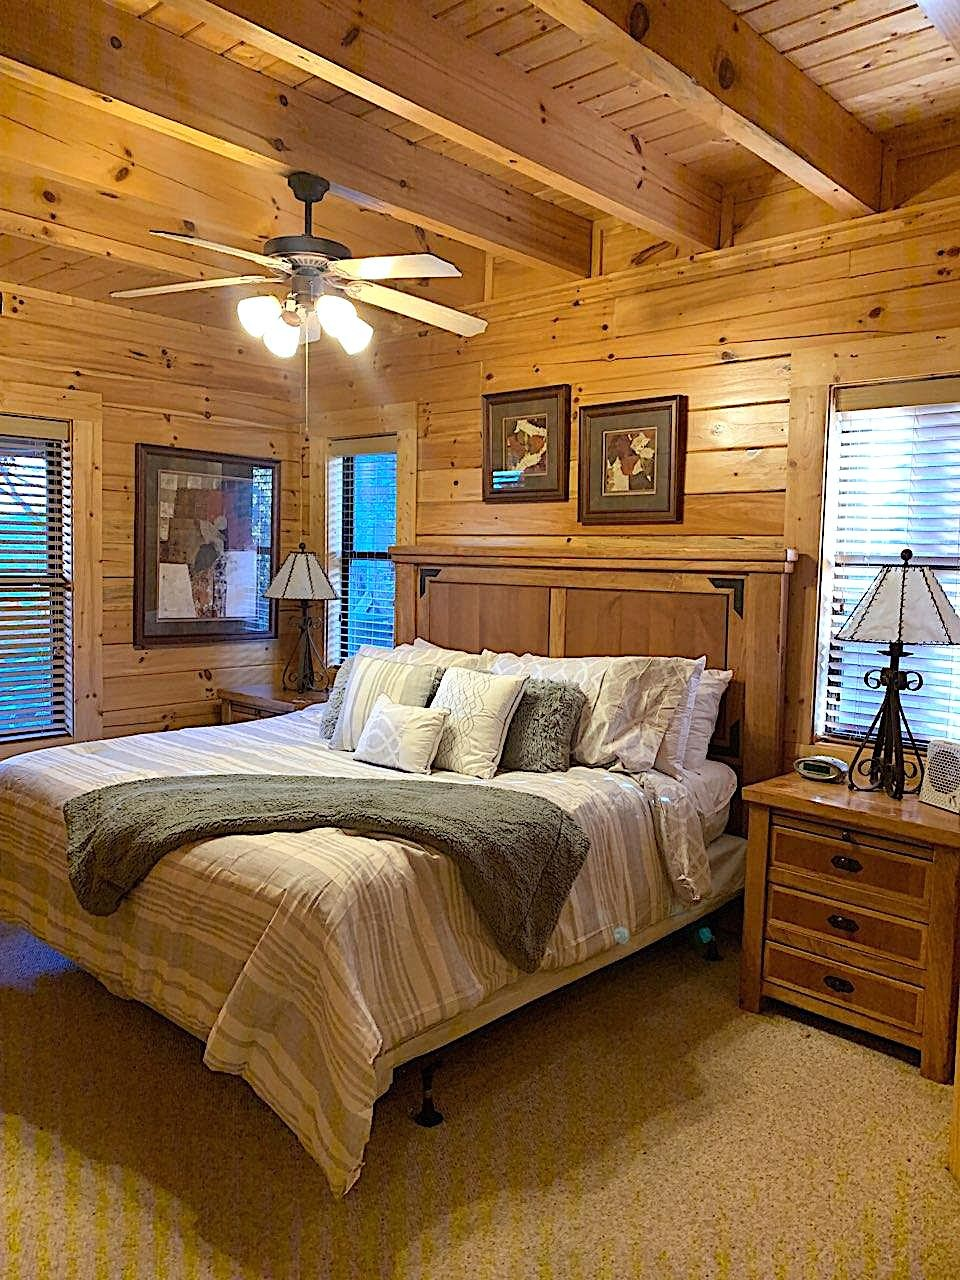 10 Min 2 Pigeon Forge Pkwy/Gorgeous Cabin/Hot Tub photo 16796866